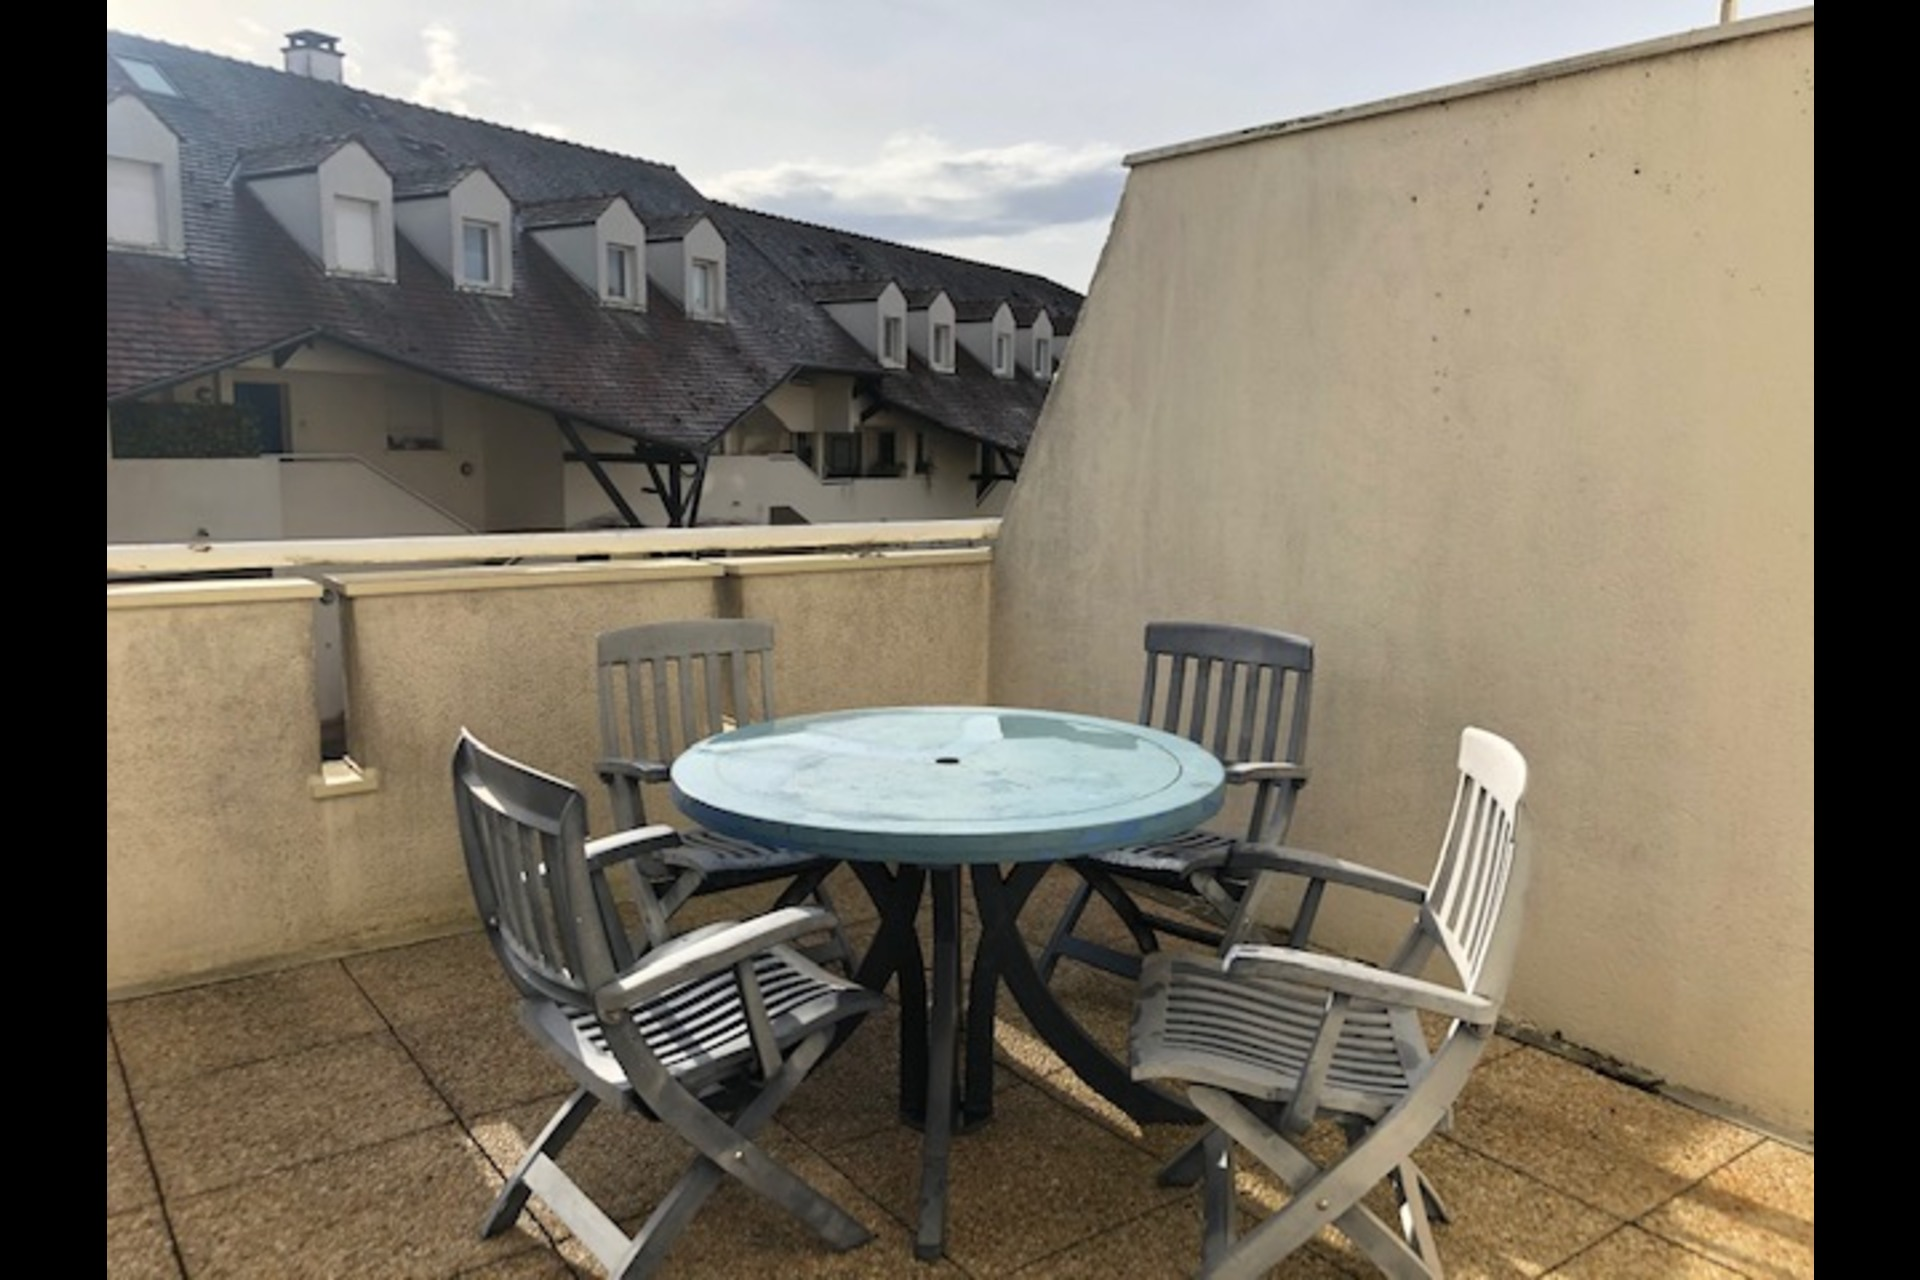 image 3 - Apartment For sale saint nom la breteche - 6 rooms